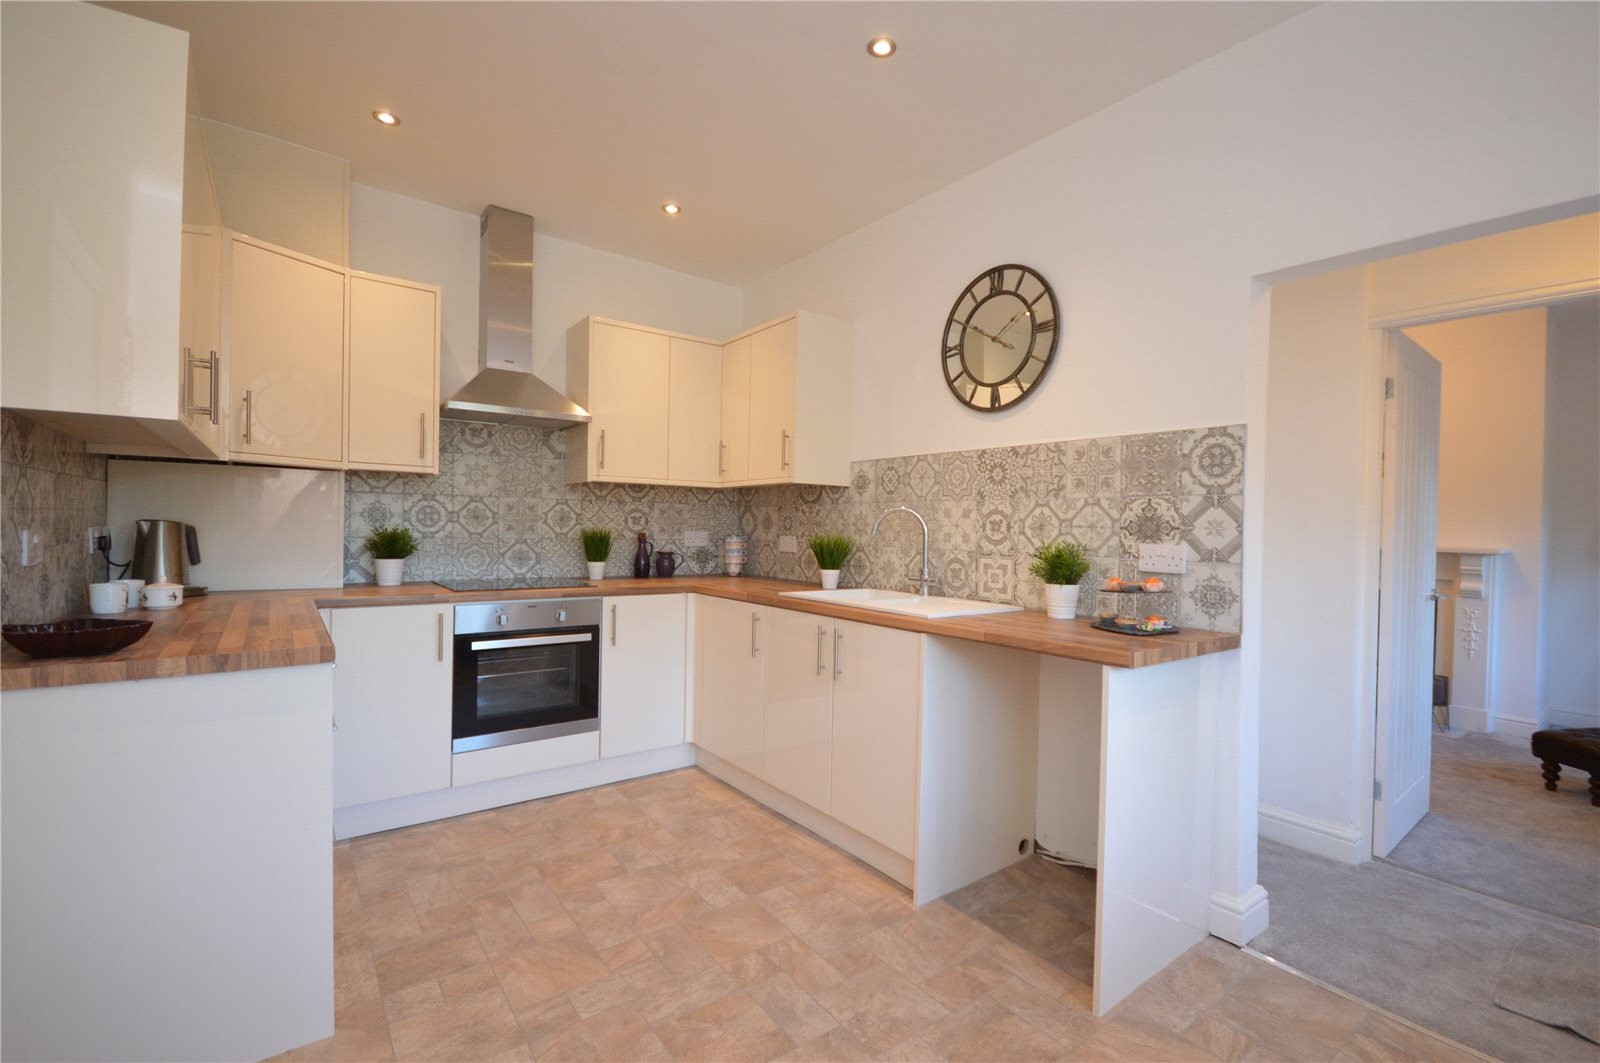 property for sale in Wakefield, interior kitchen modern and fitted